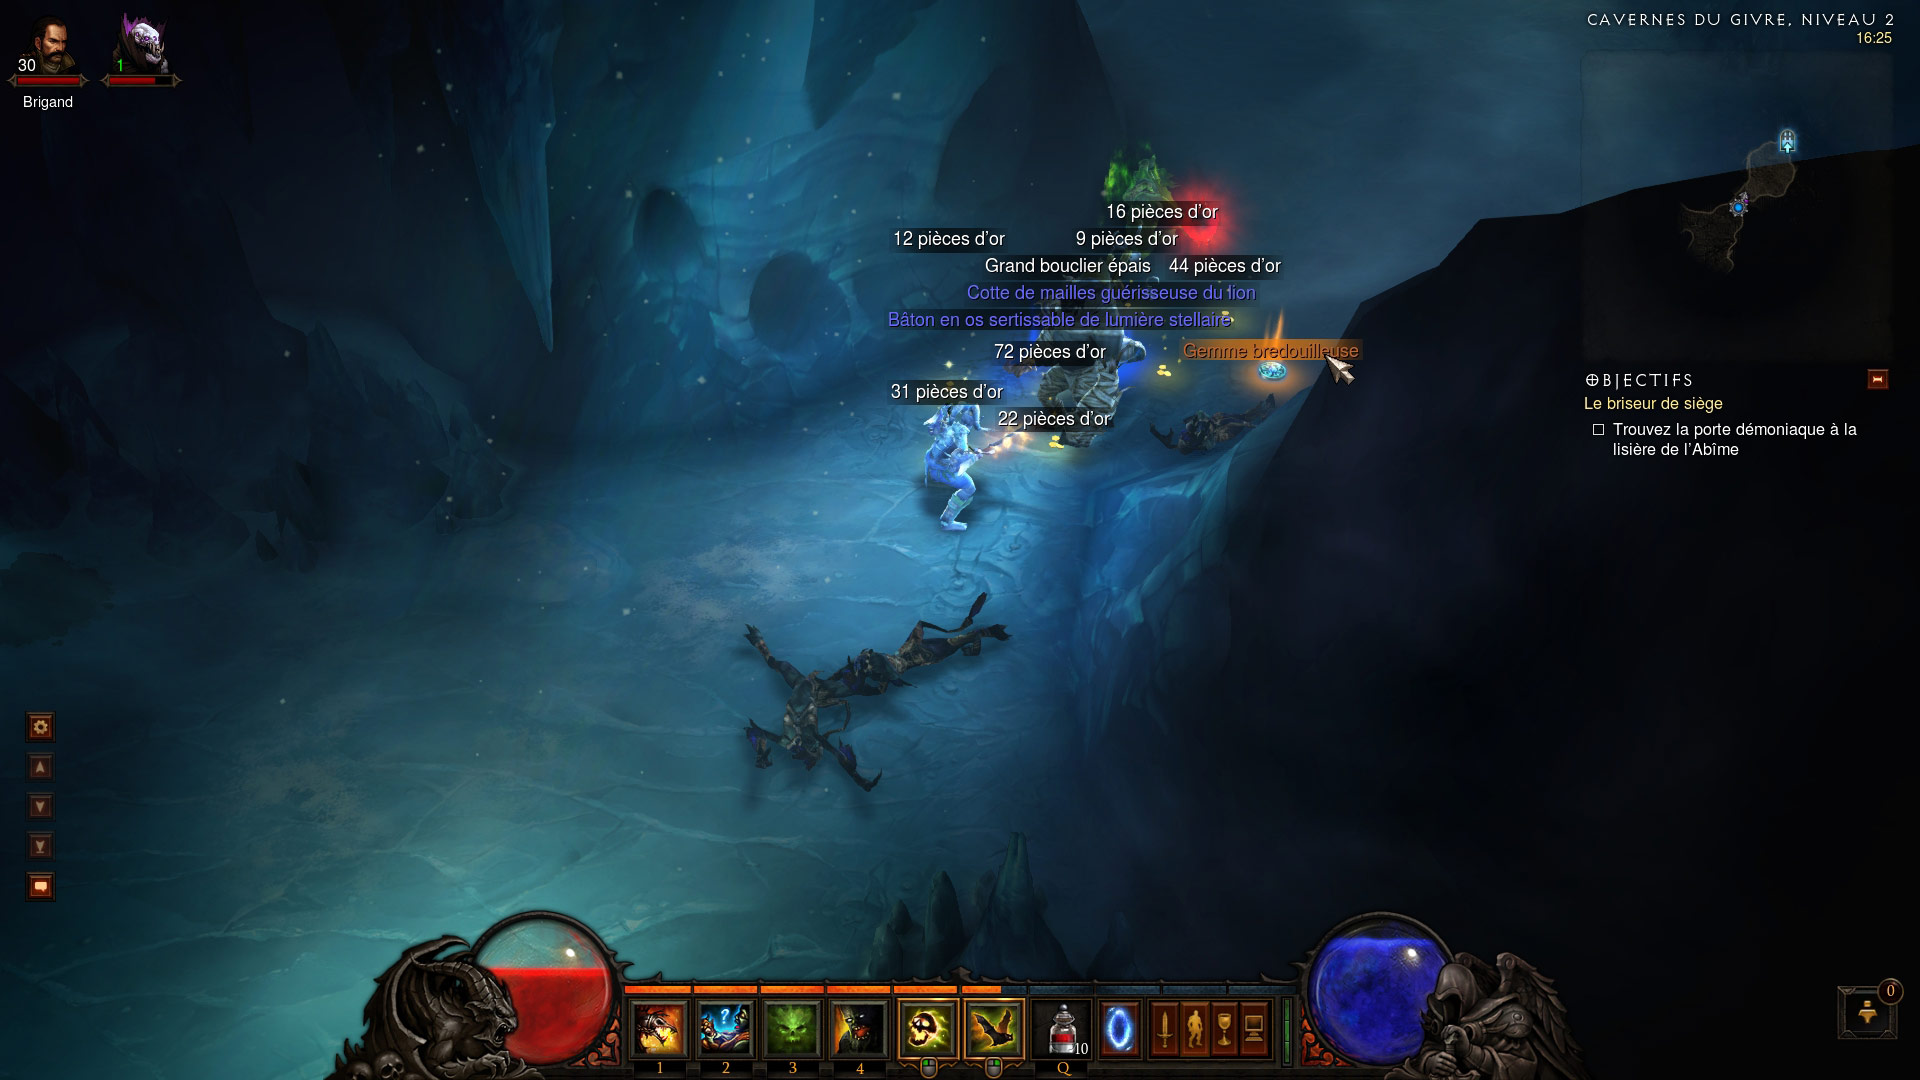 Screenshot de Diablo III.